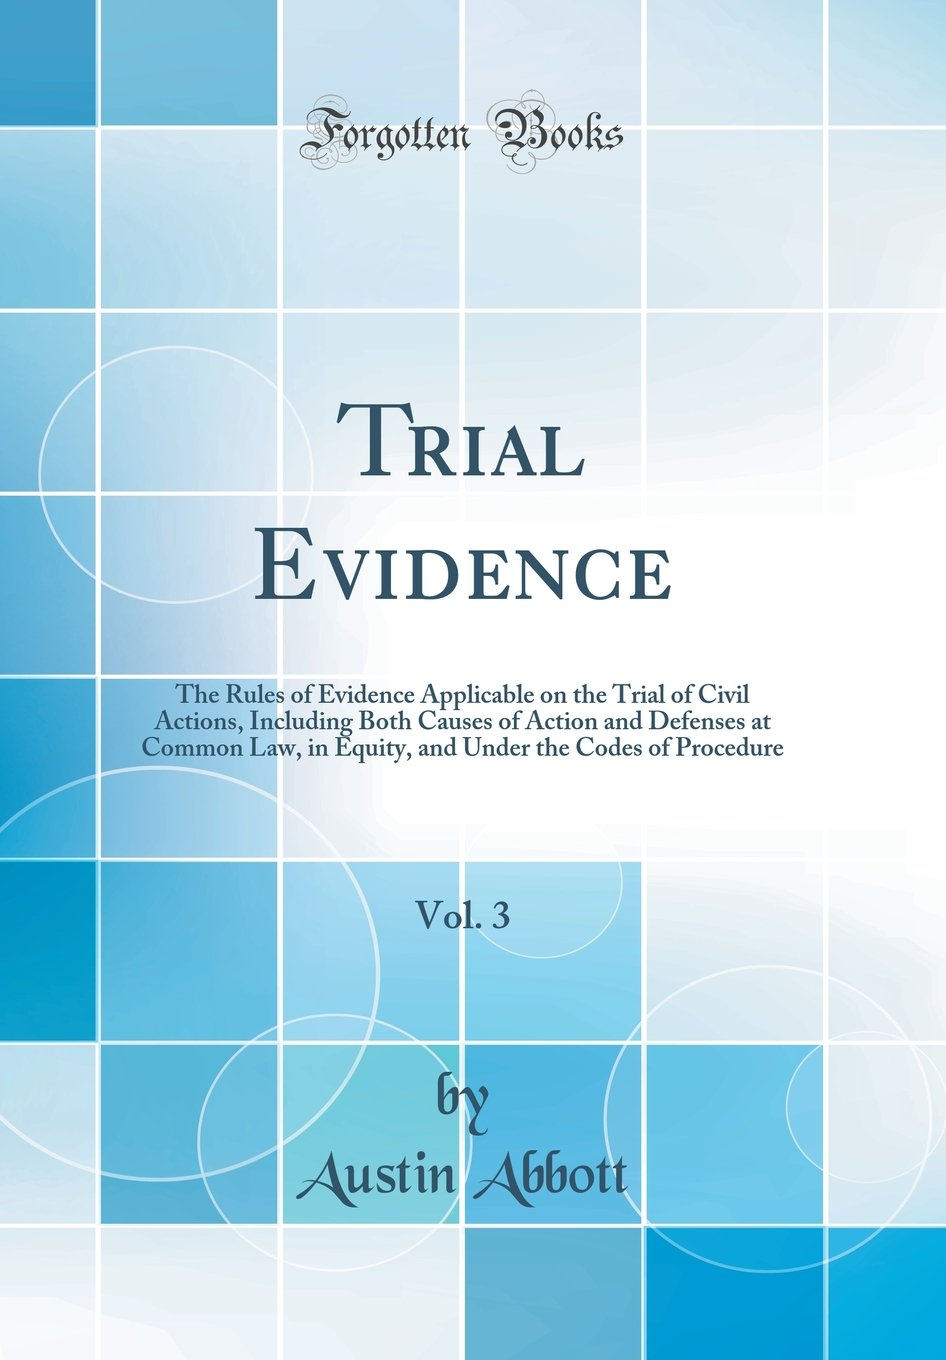 Trial Evidence, Vol. 3: The Rules of Evidence Applicable on the Trial of Civil Actions, Including Both Causes of Action and Defenses at Common Law, in ... the Codes of Procedure (Classic Reprint) pdf epub